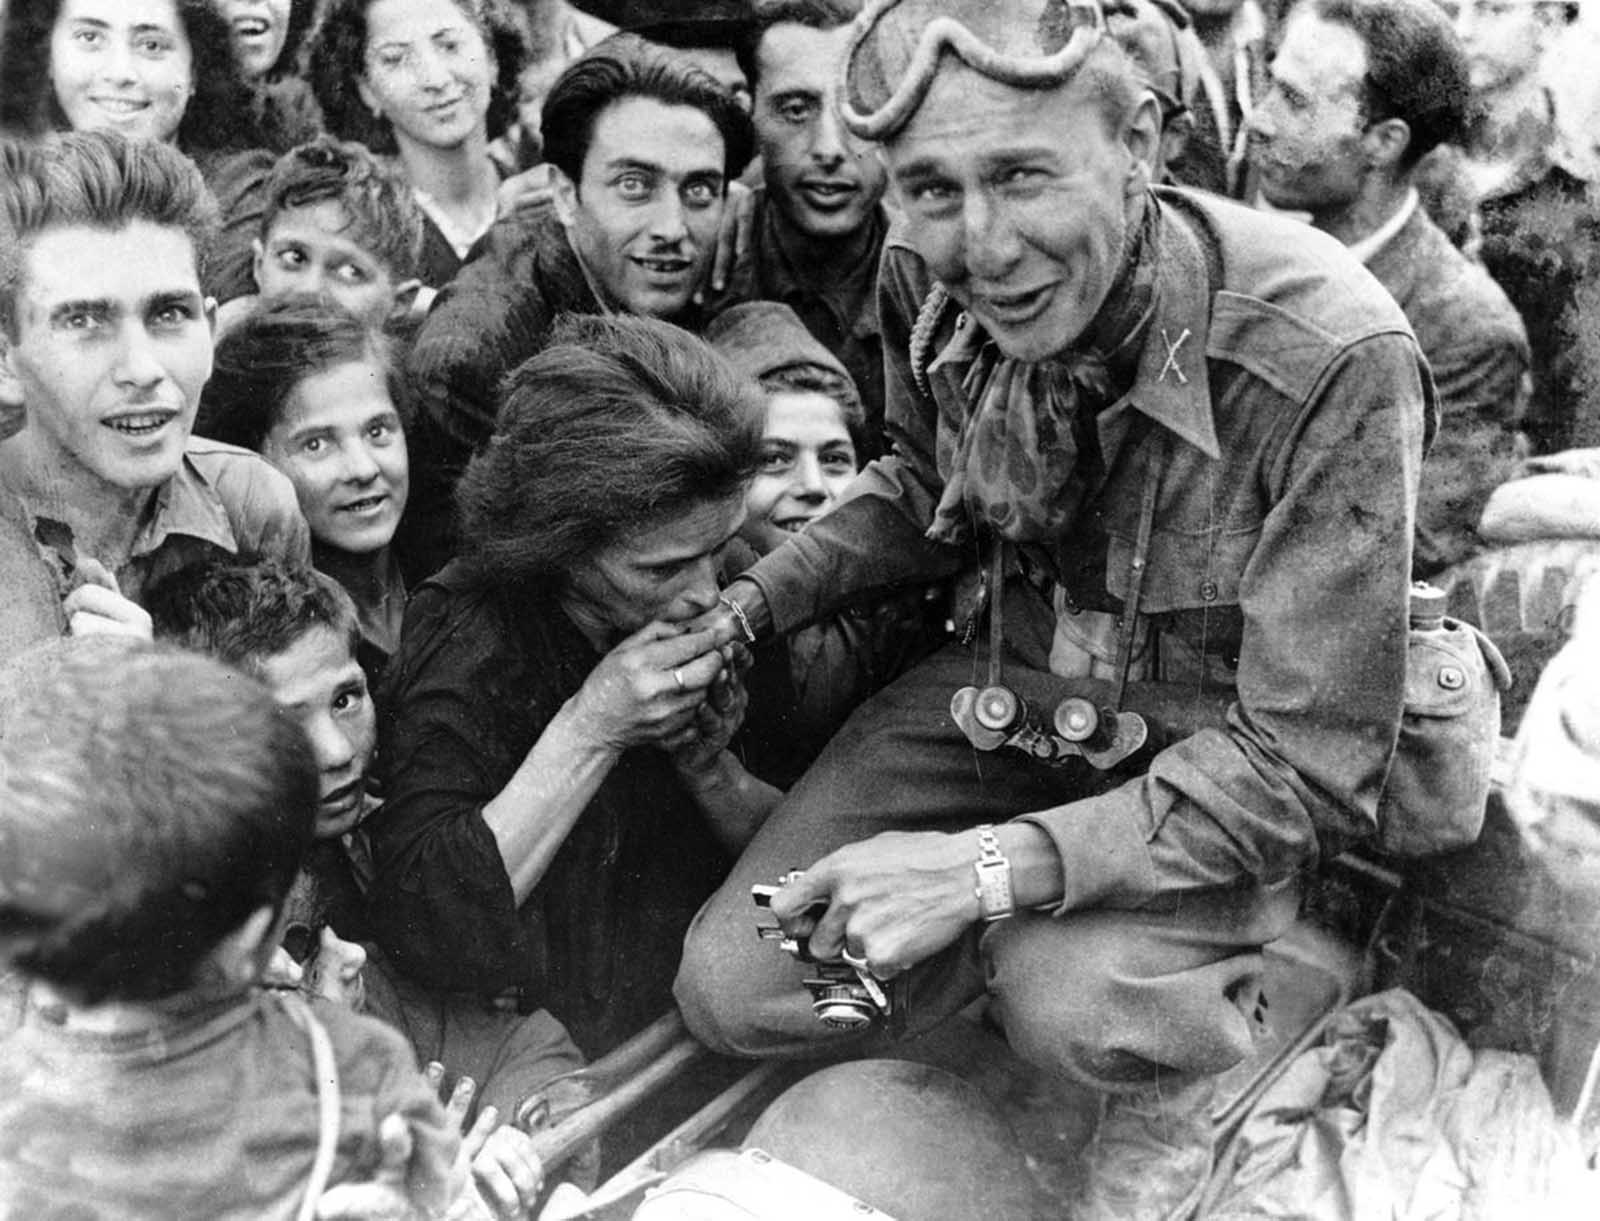 An Italian woman kisses the hand of a soldier of the U.S. Fifth Army after troops move into Naples in their invasion and advance northward in Italy, on October 10, 1943.